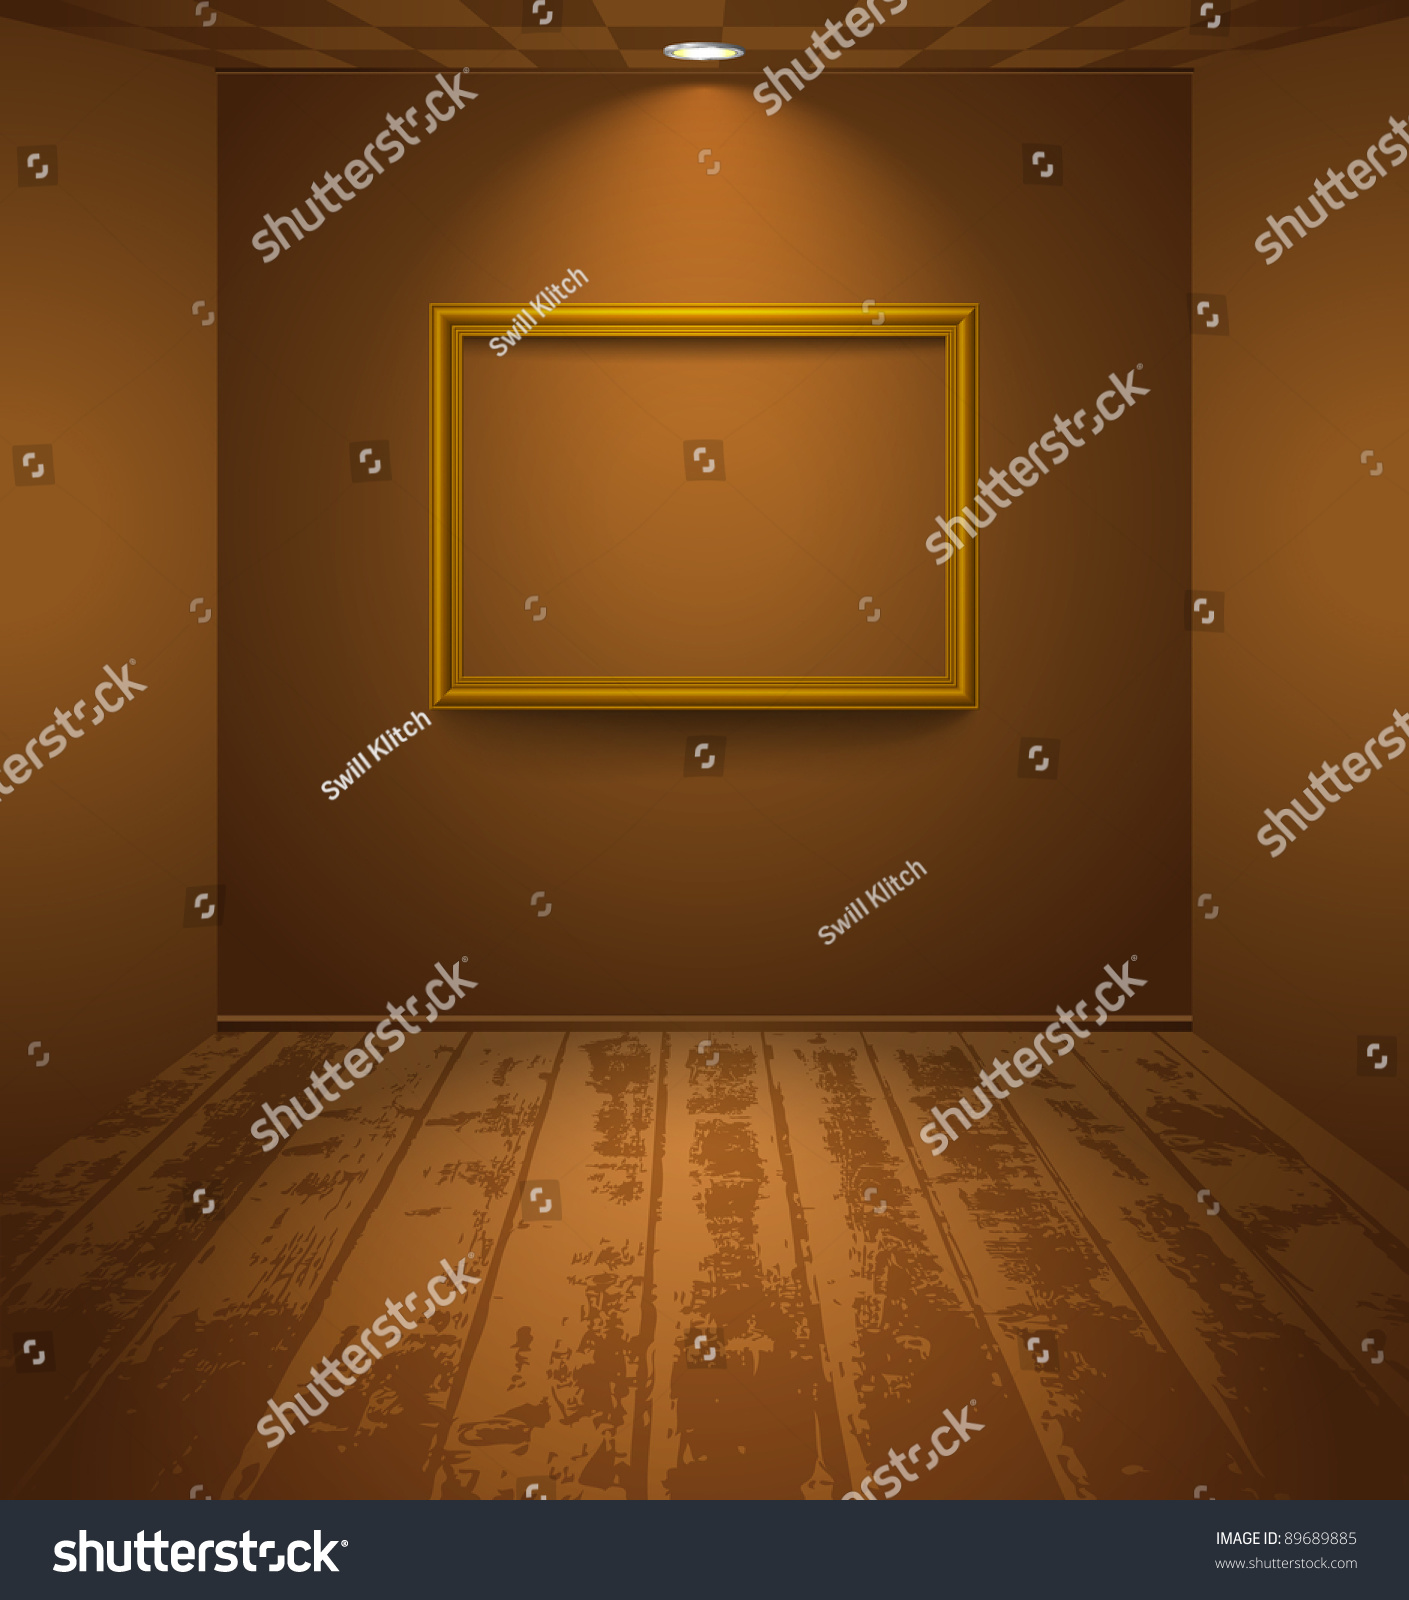 empty frame in a brown room with wooden floor